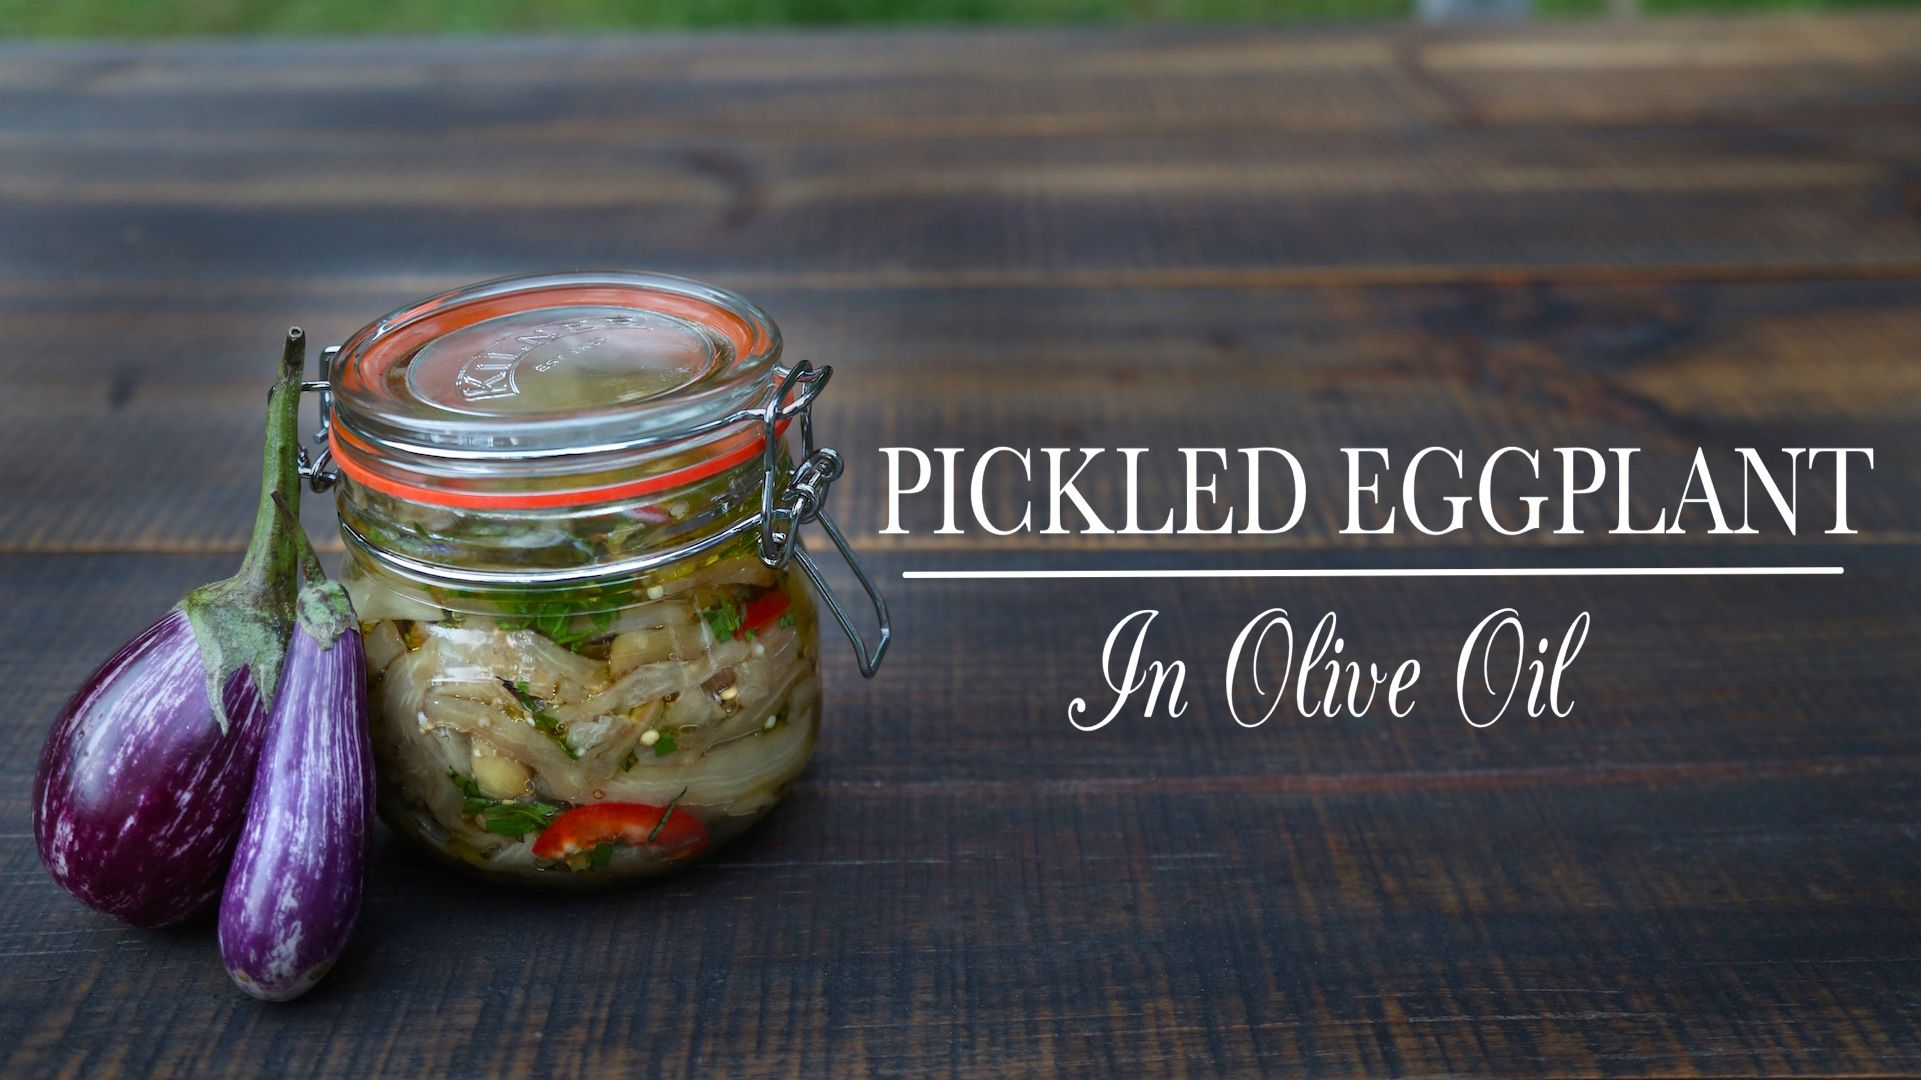 Pickled Eggplant is a traditional Italian recipe with a variety of preparation methods. Watch online: Pickled Eggplant from Kitchen Vignettes. On demand, streaming video from KTXT